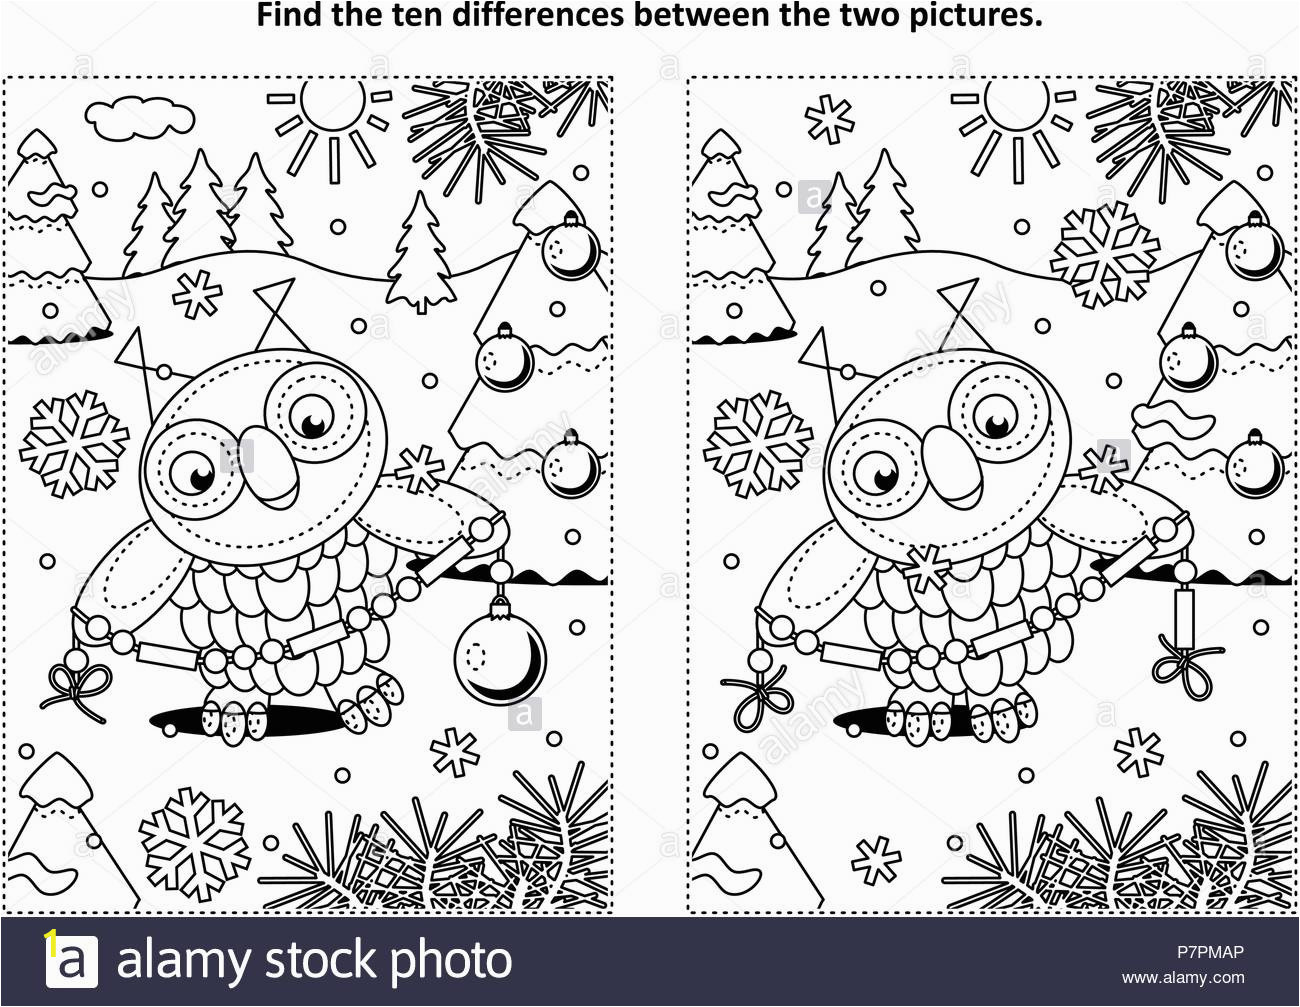 winter holidays new year or christmas themed find the ten differences picture puzzle and coloring page with owl holding glass beads garland P7PMAP